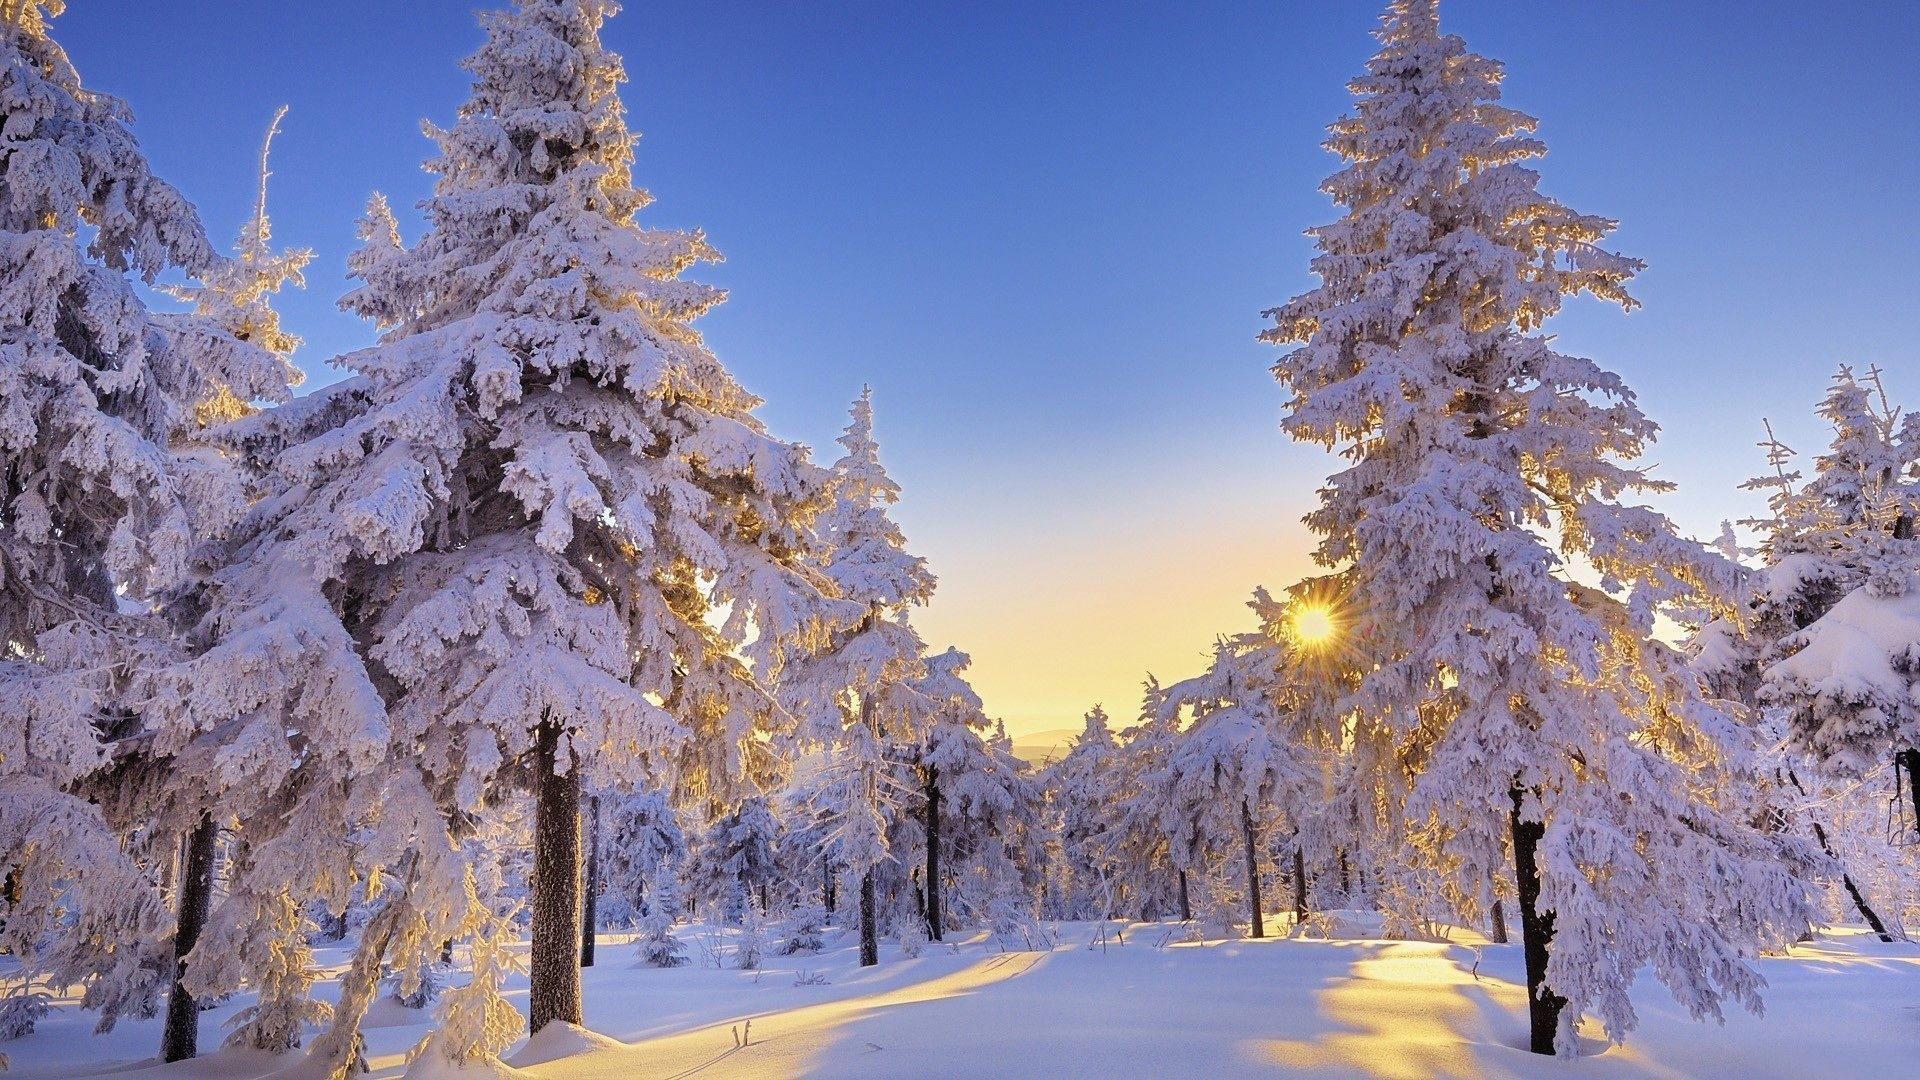 1920x1080 winter wonderland desktop wallpaper 1920×1080